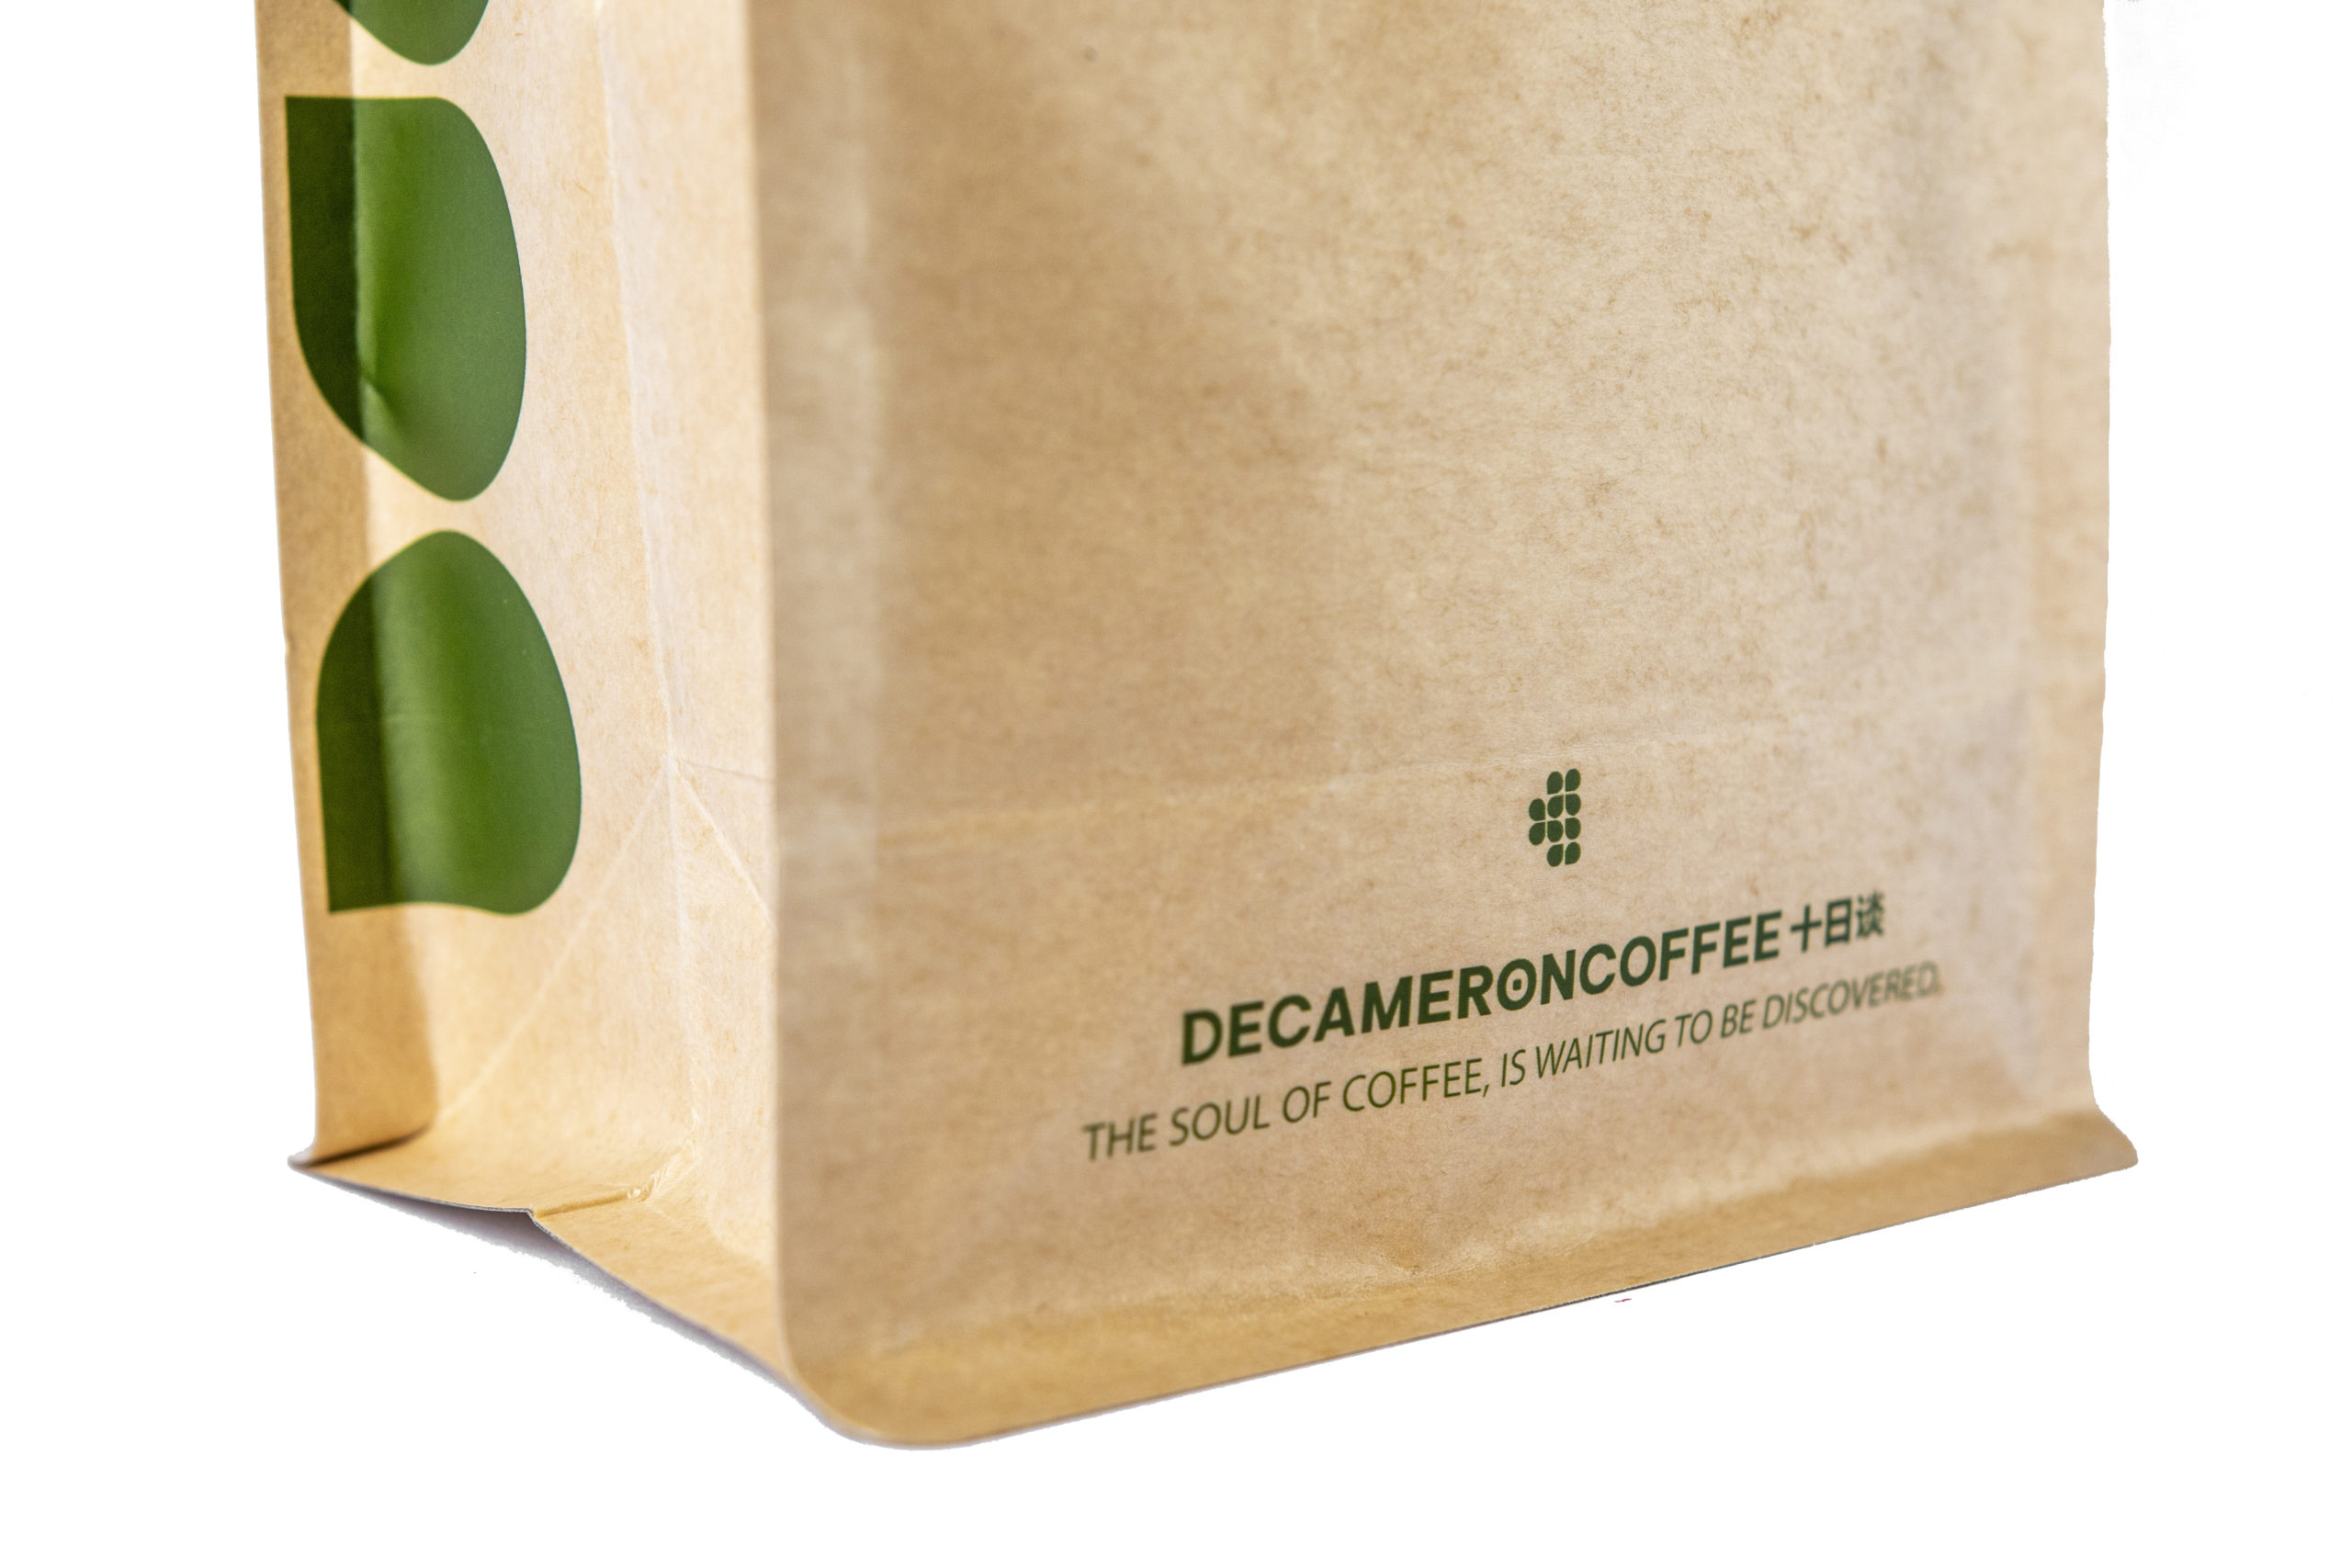 Kraft paper is a biodegradable and compostable coffee packaging option.